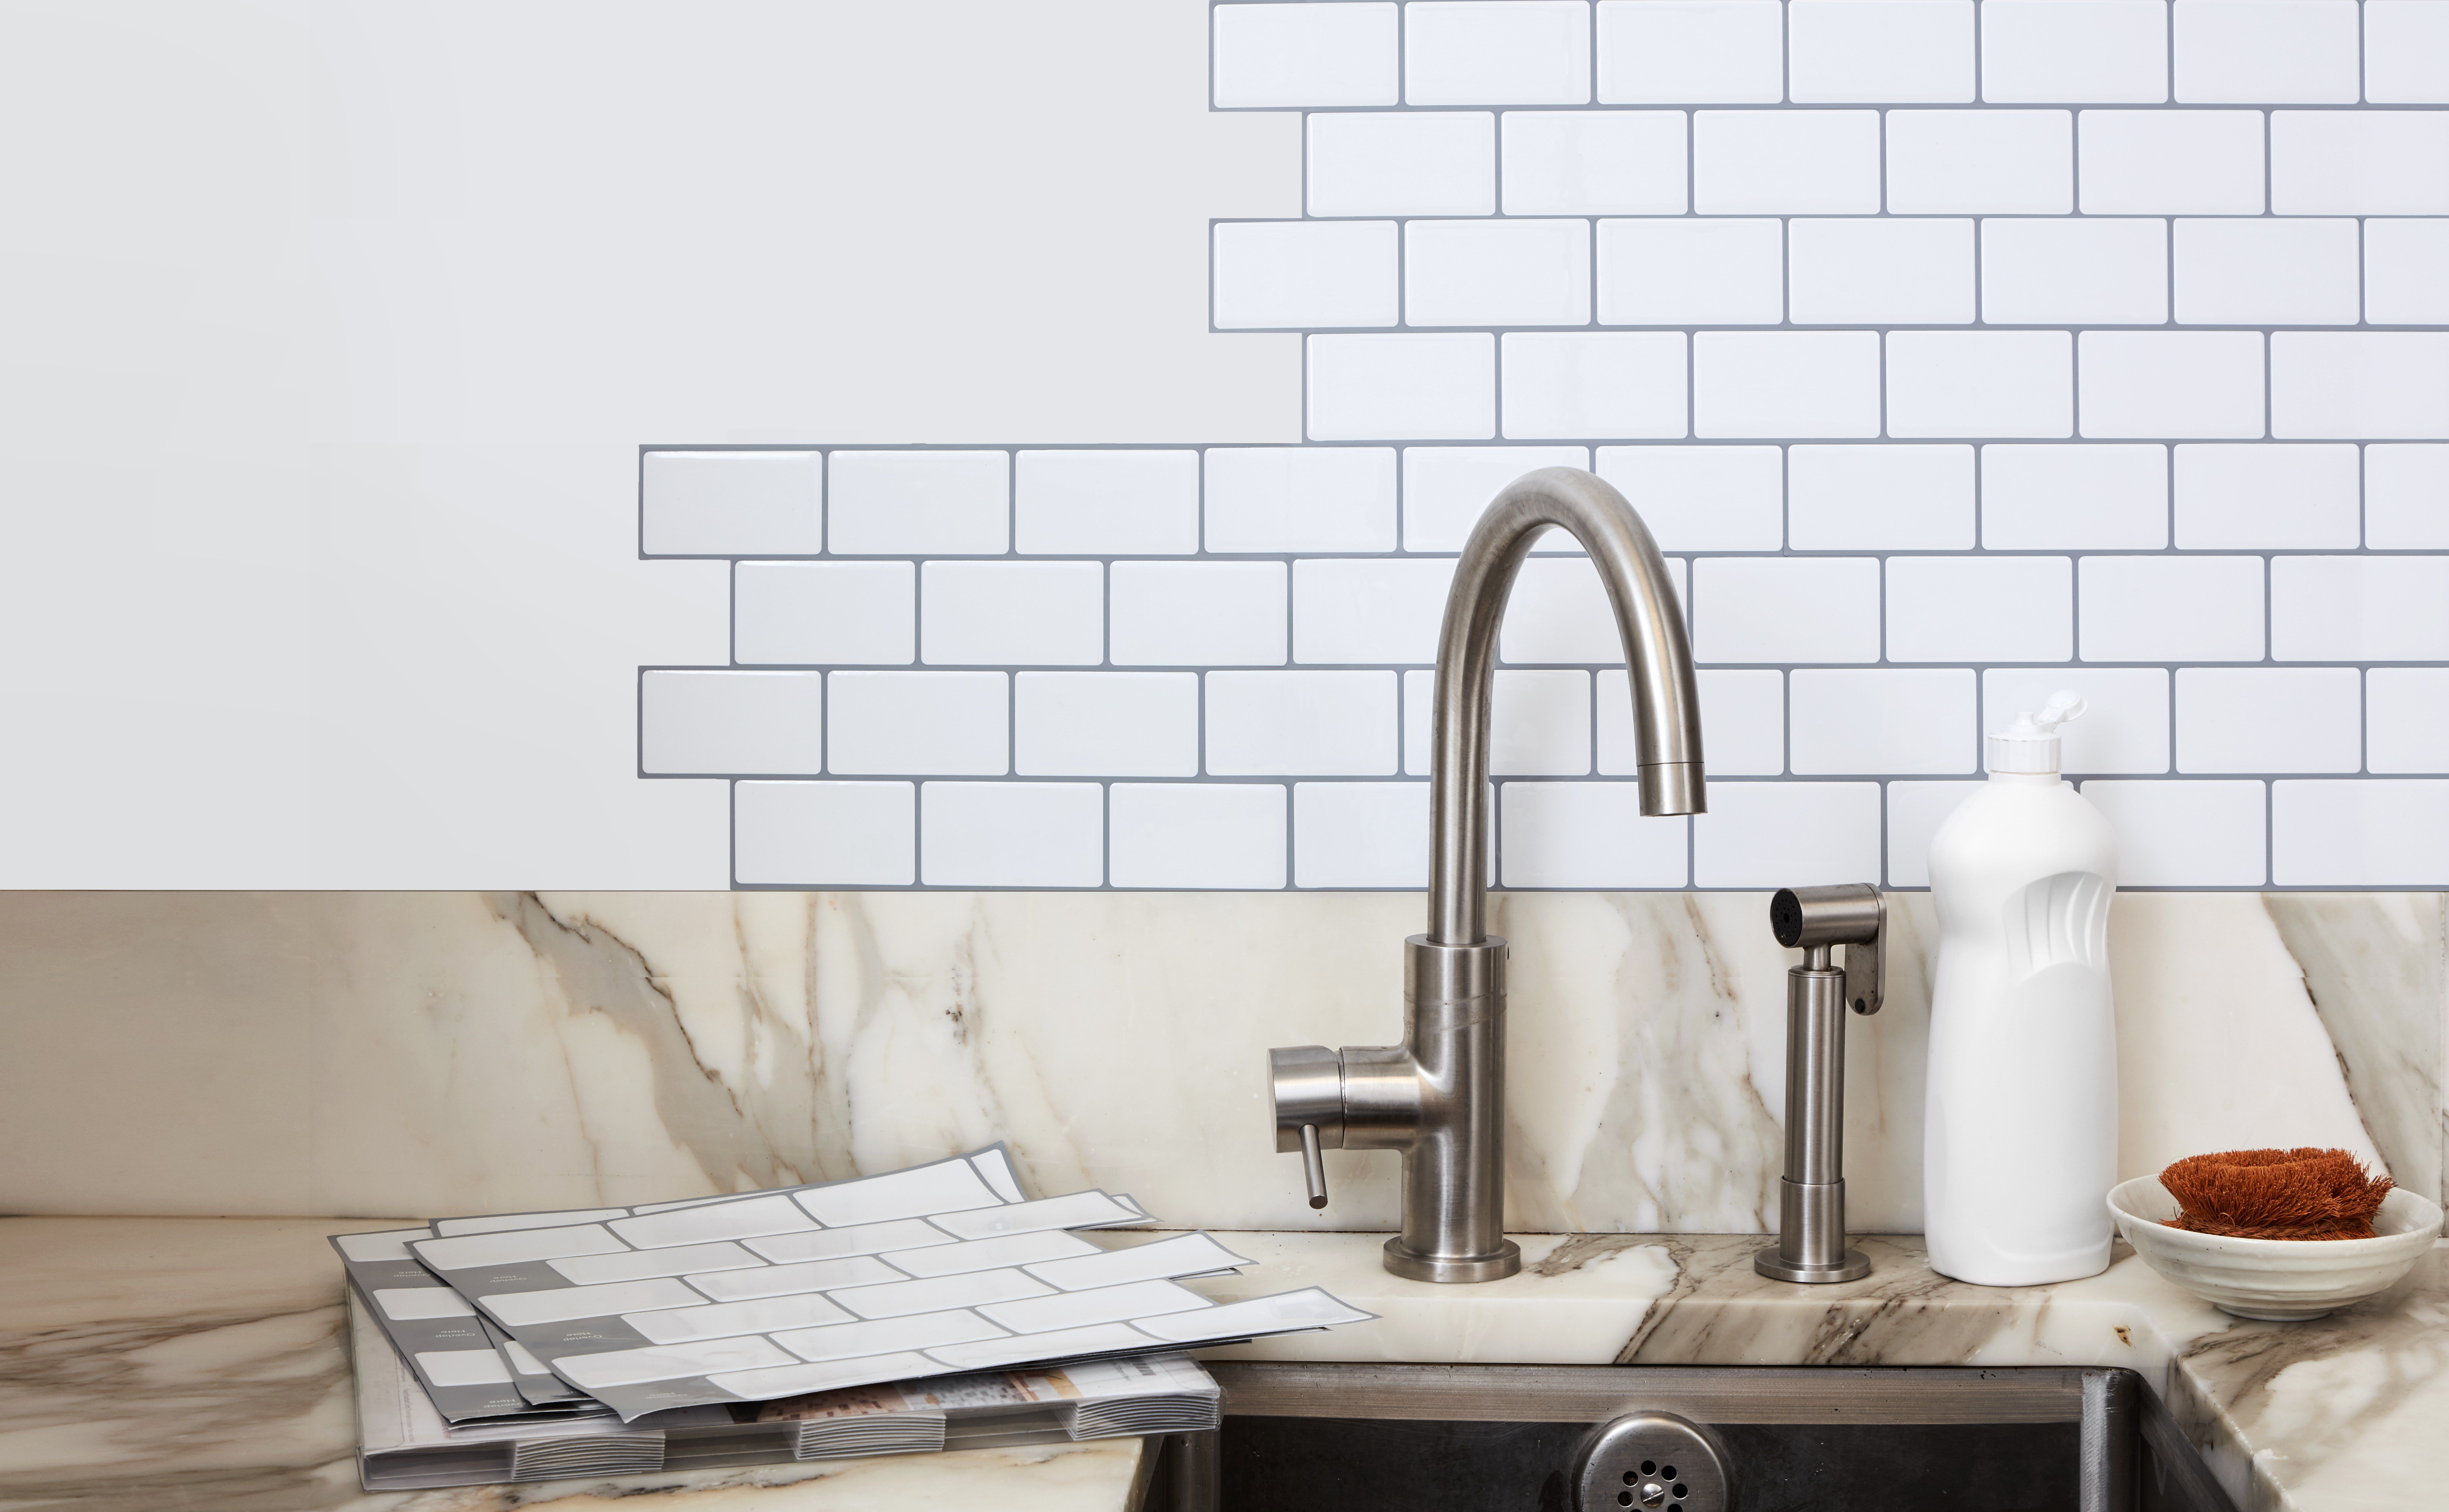 Self Adhesive Wall Tiles Will Transform Your Kitchen Self Adhesive Wall Tiles Rental Kitchen Wall Tiles